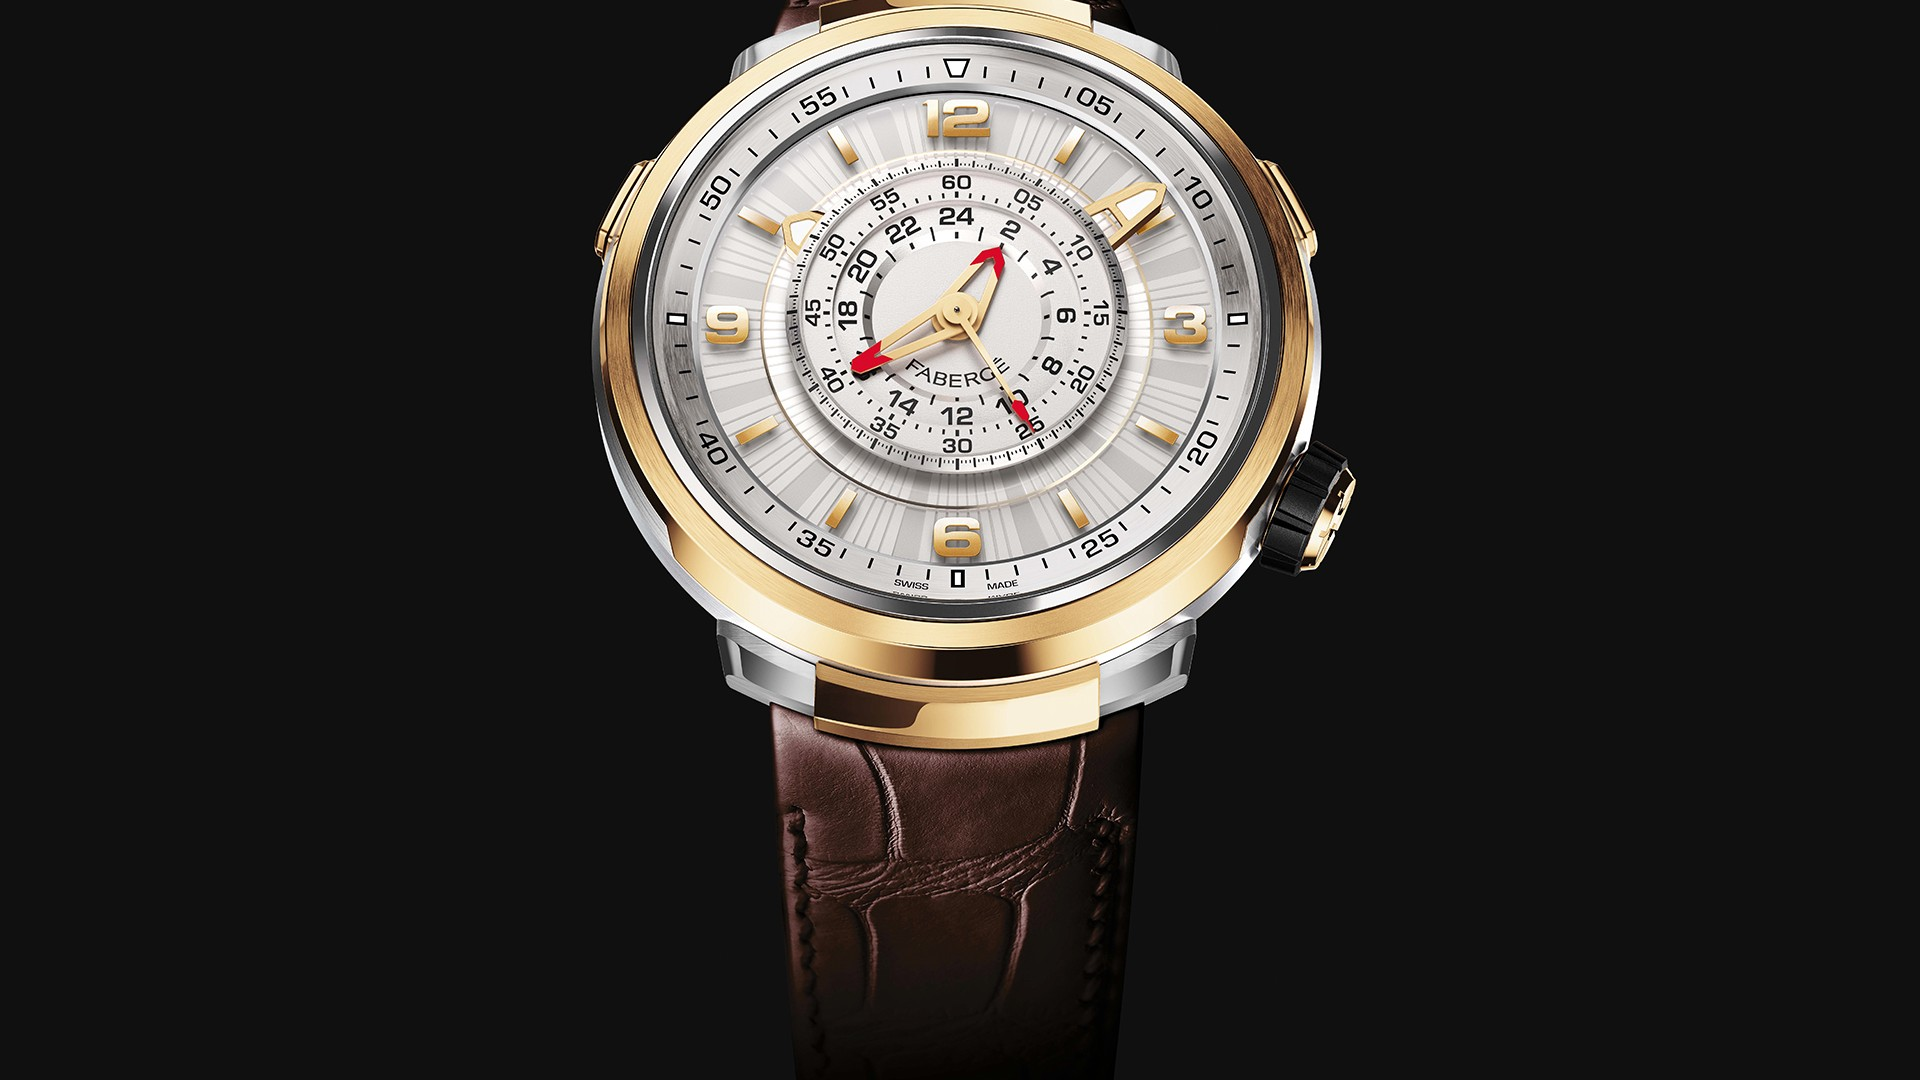 Fabergé Visionnaire Chronograph watch